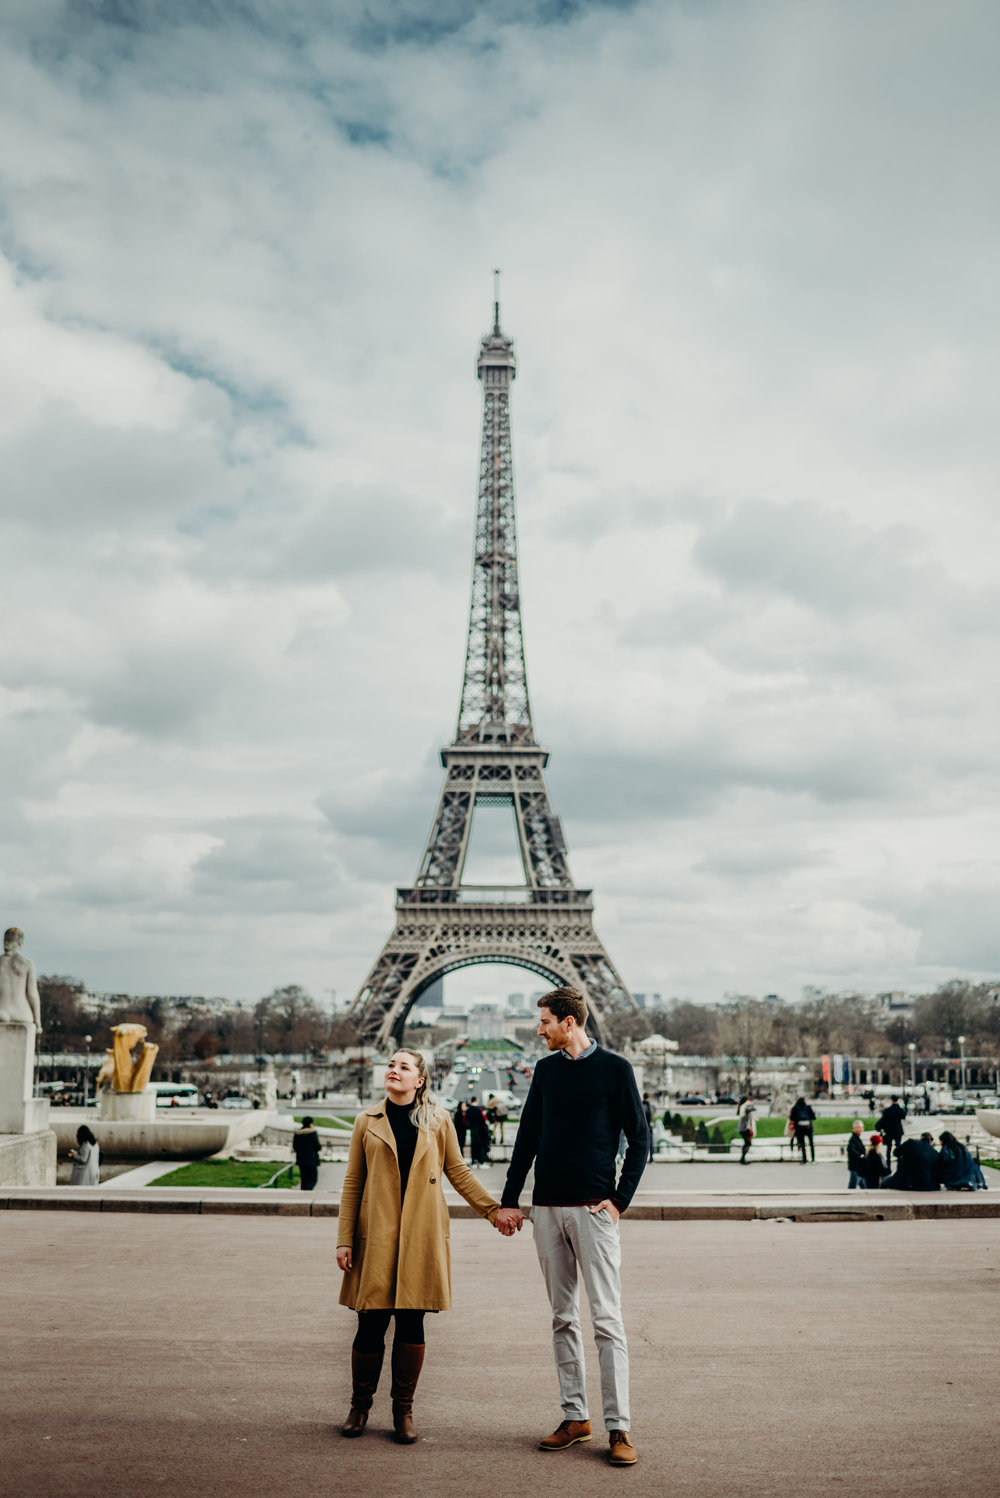 newlyweds on their honeymoon posing in front of the Eiffel Tower in Paris, France